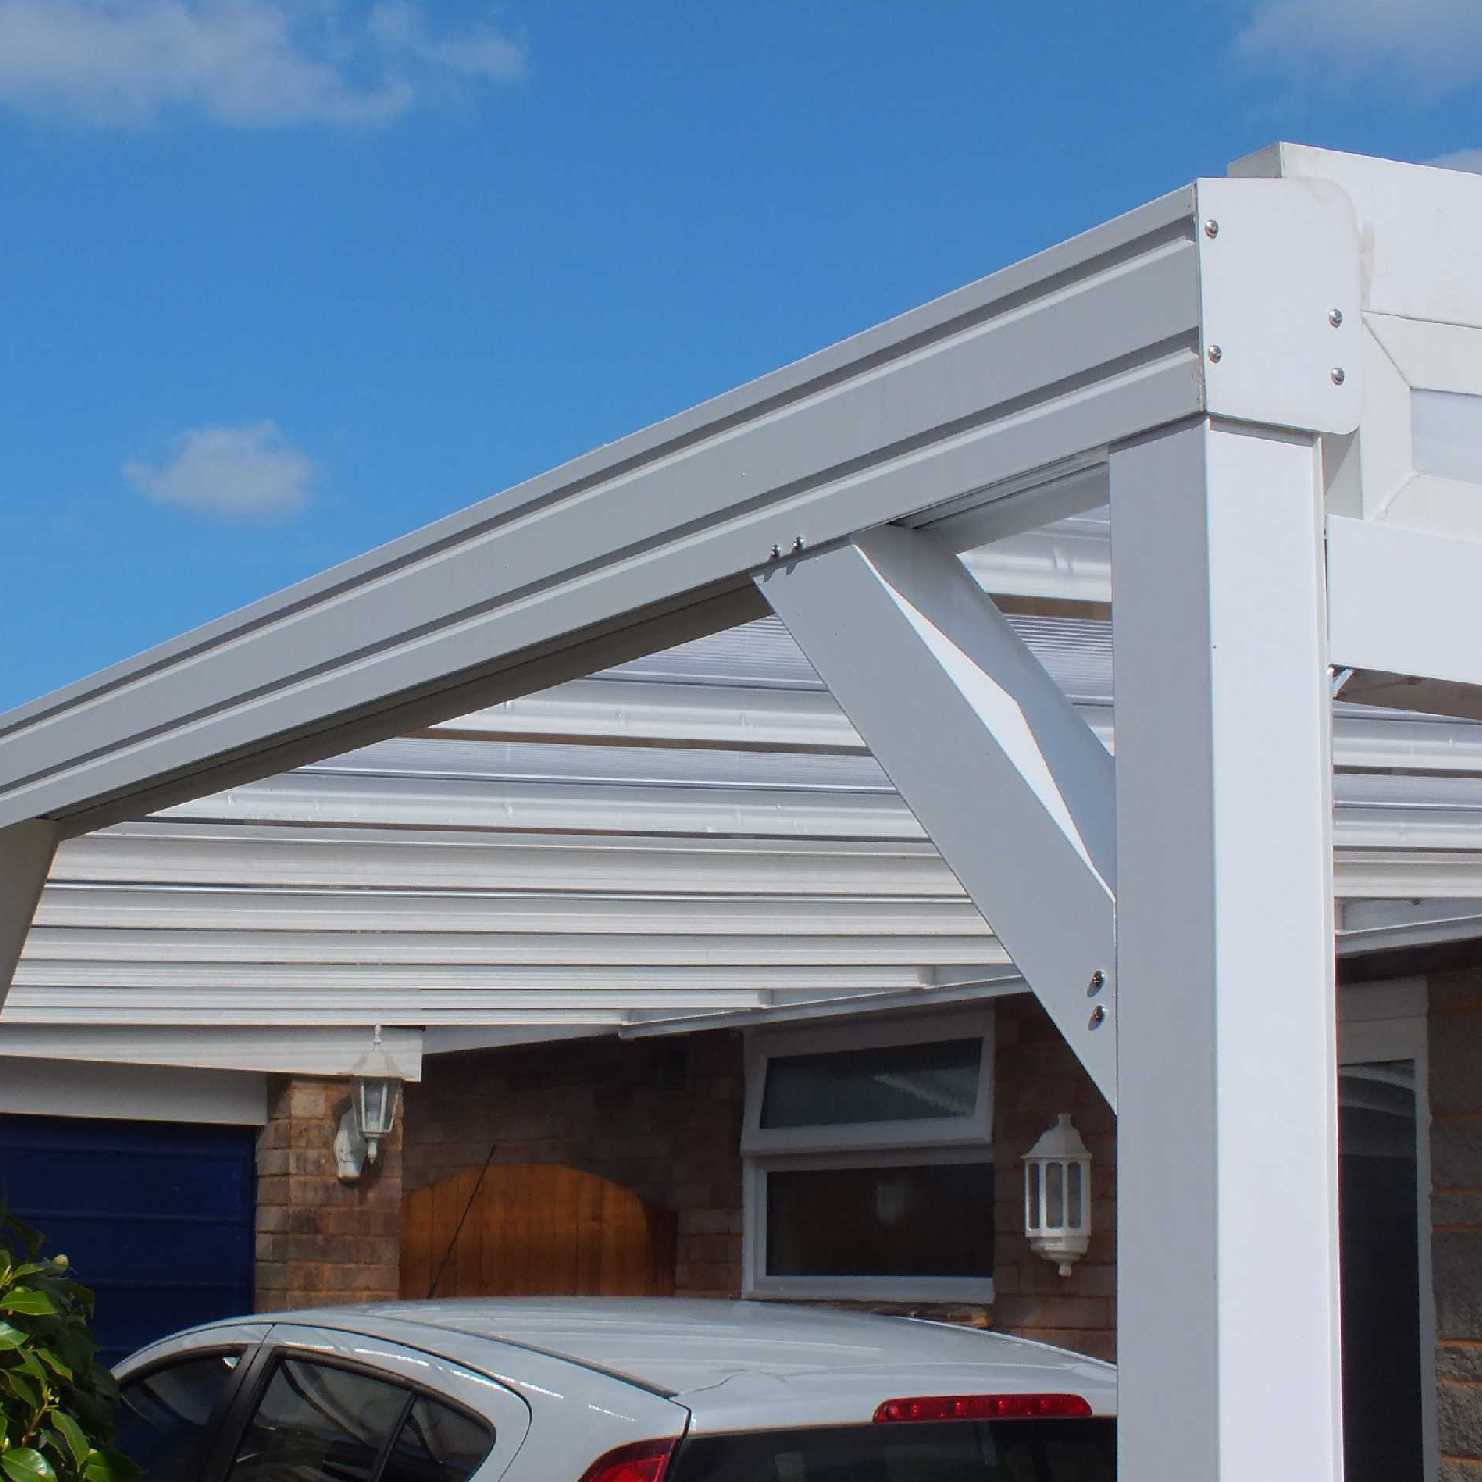 Buy Omega Smart White Lean-To Canopy with 16mm Polycarbonate Glazing - 6.0m (W) x 2.0m (P), (3) Supporting Posts online today